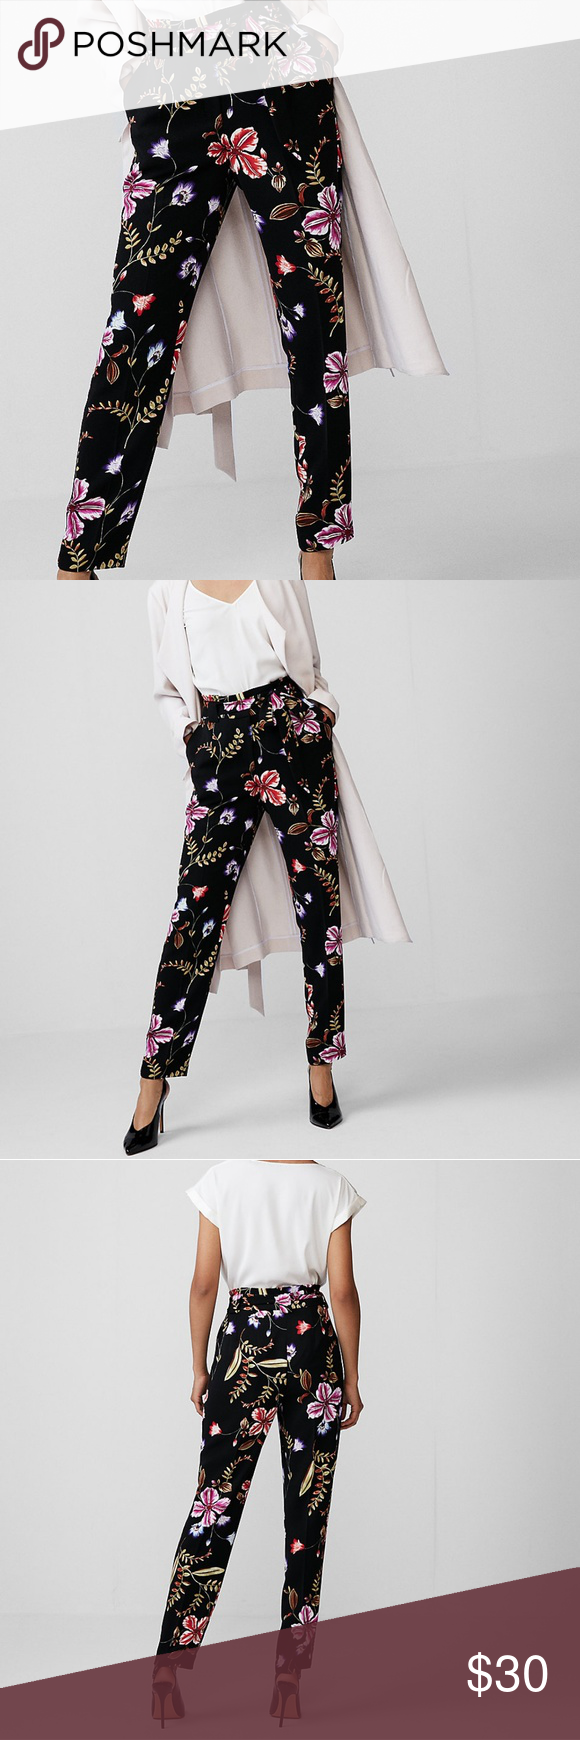 37e5785c51a3 High Waisted Floral Tie Waist Ankle Pant Style   NWT These pants blossom  with personality and